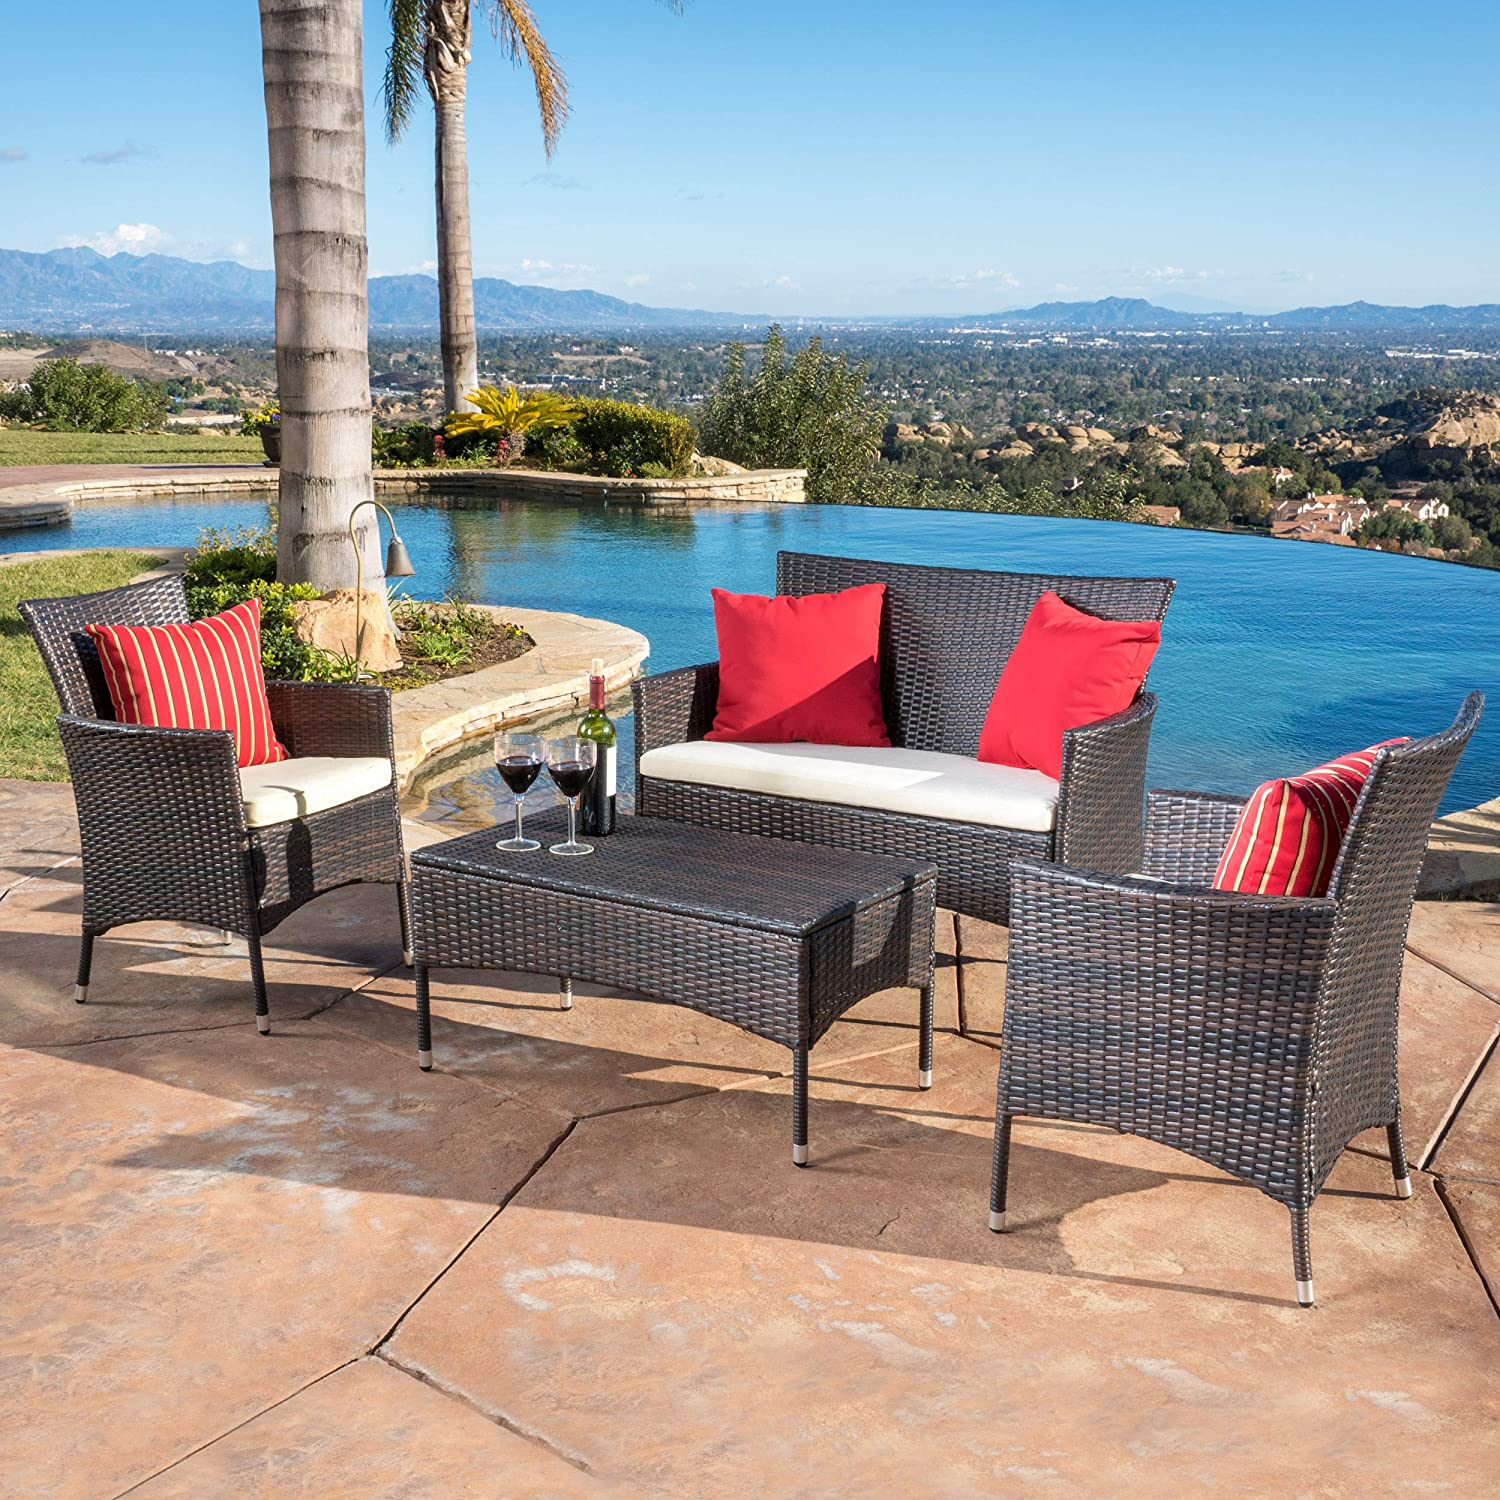 Great Deal Furniture Olivera Outdoor 4-Piece Multi-Brown Wicker Chat Set with Cushions